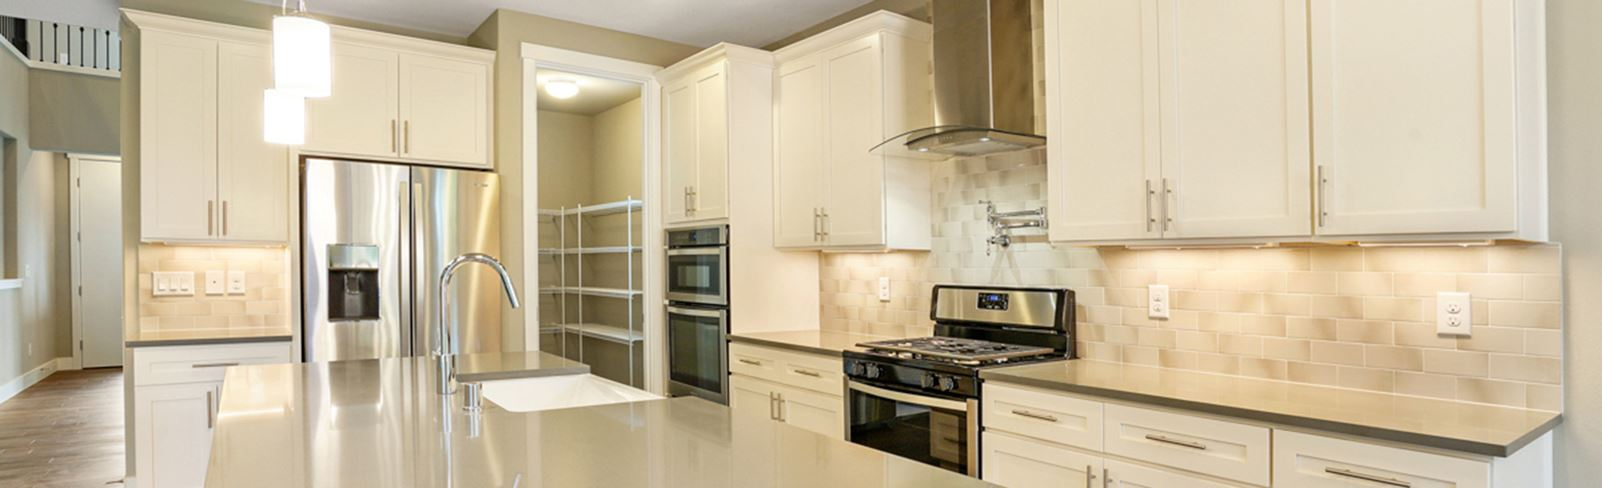 tehaleh-brookstone-homes-glacier-bay-kitchen.jpg (1)